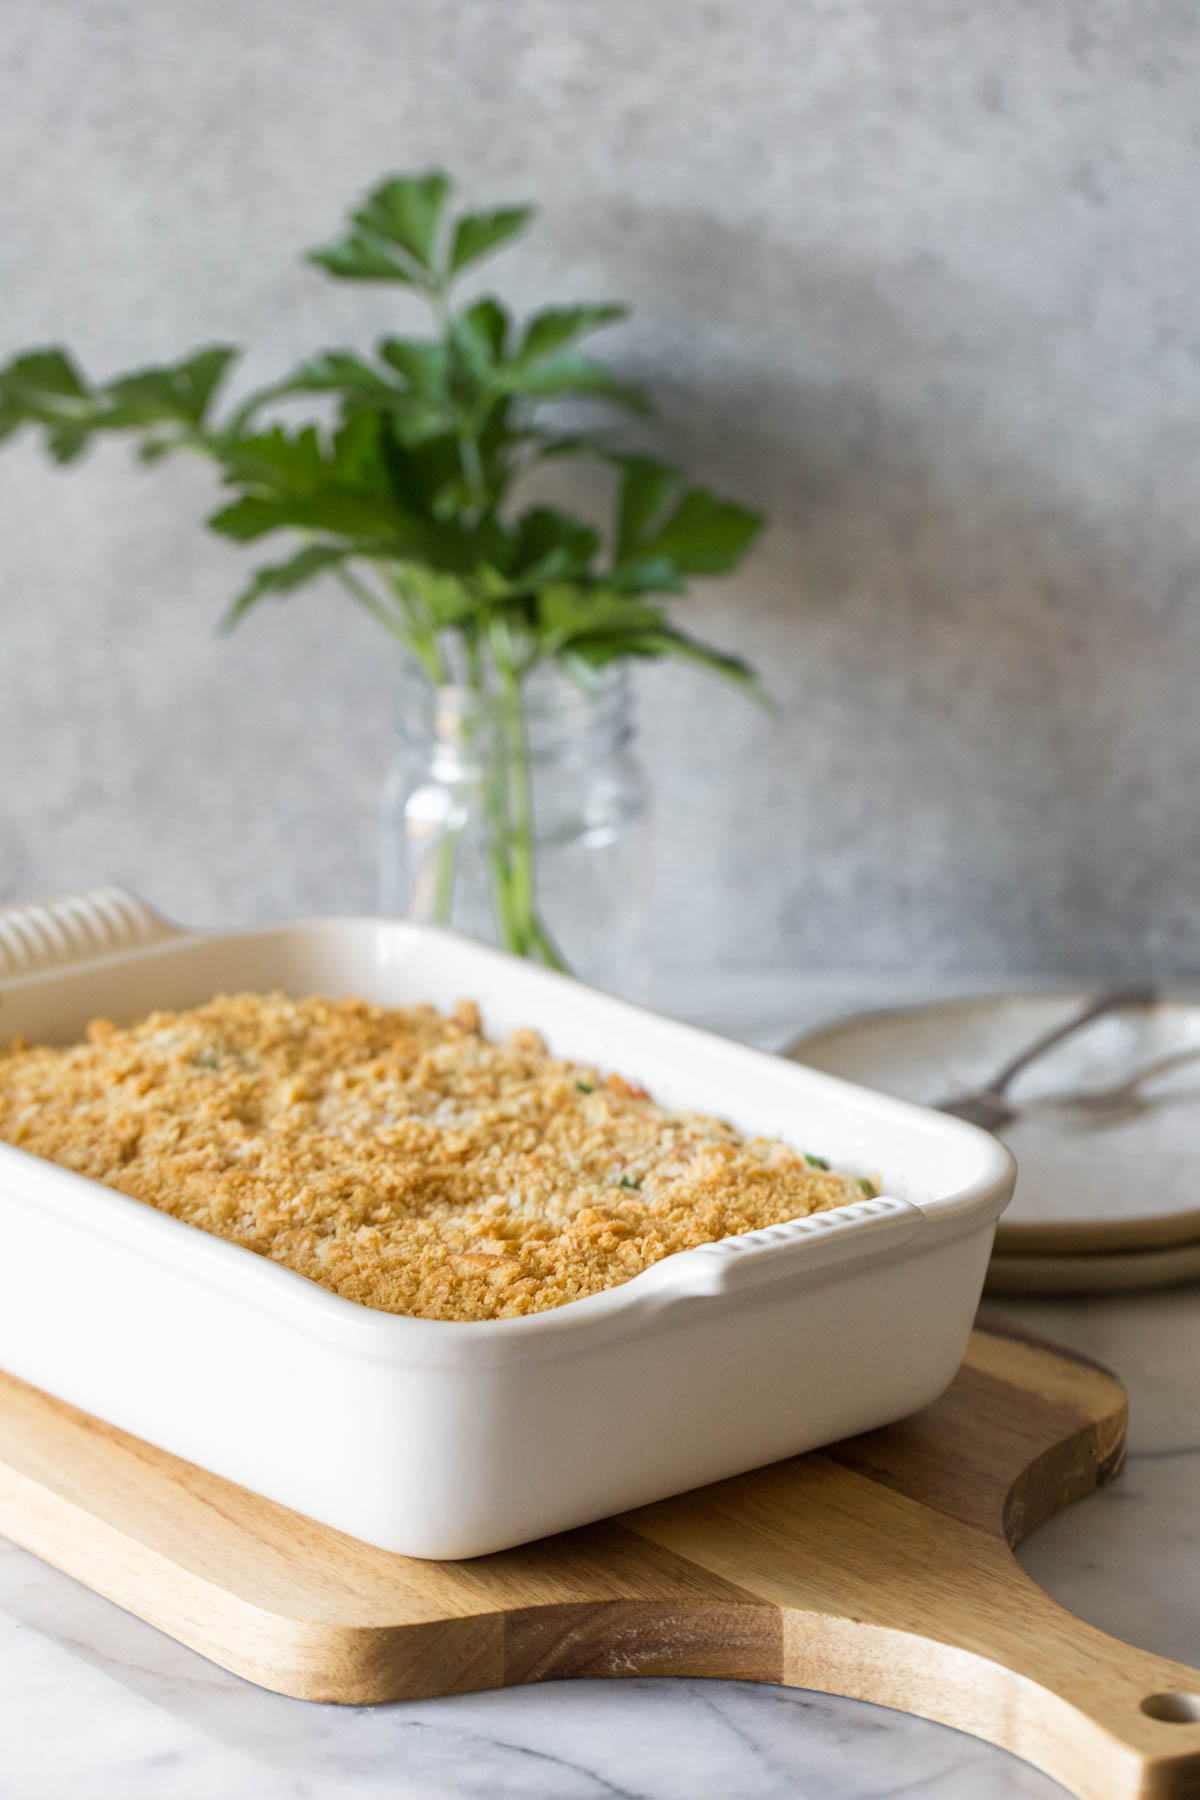 Cooking casserole dish on a wooden cutting board.